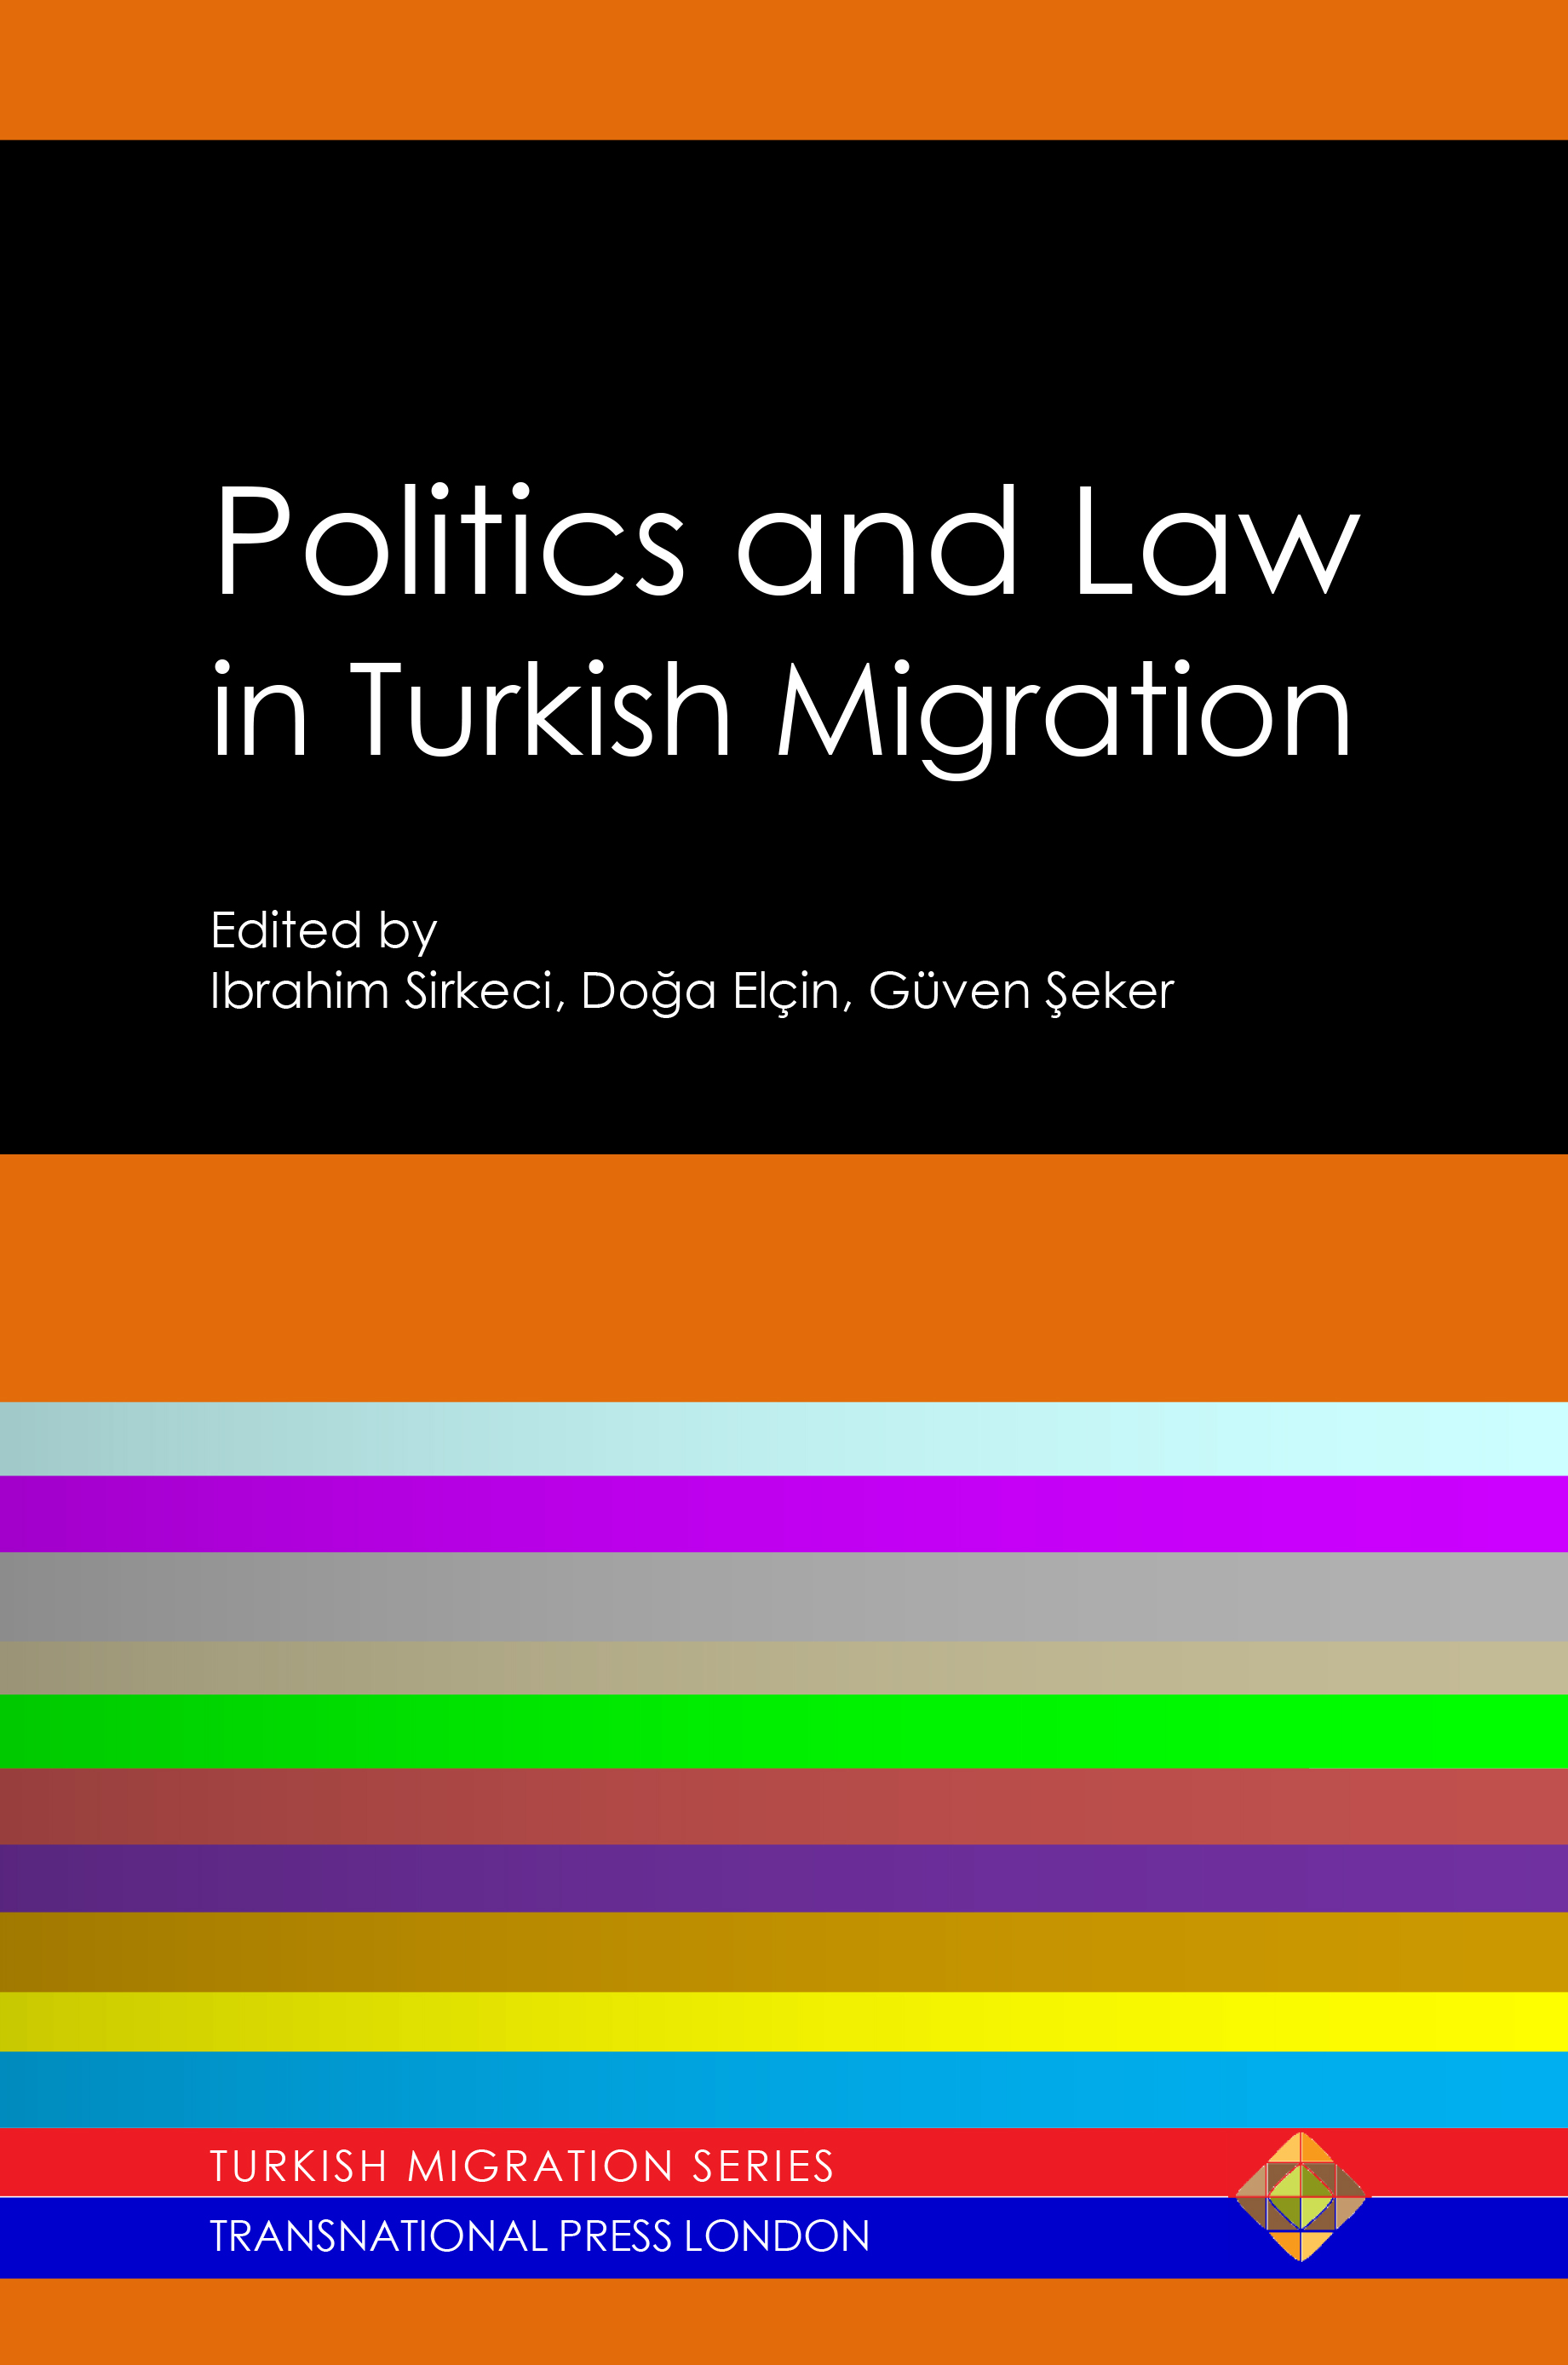 Politics and Law in Turkish Migration